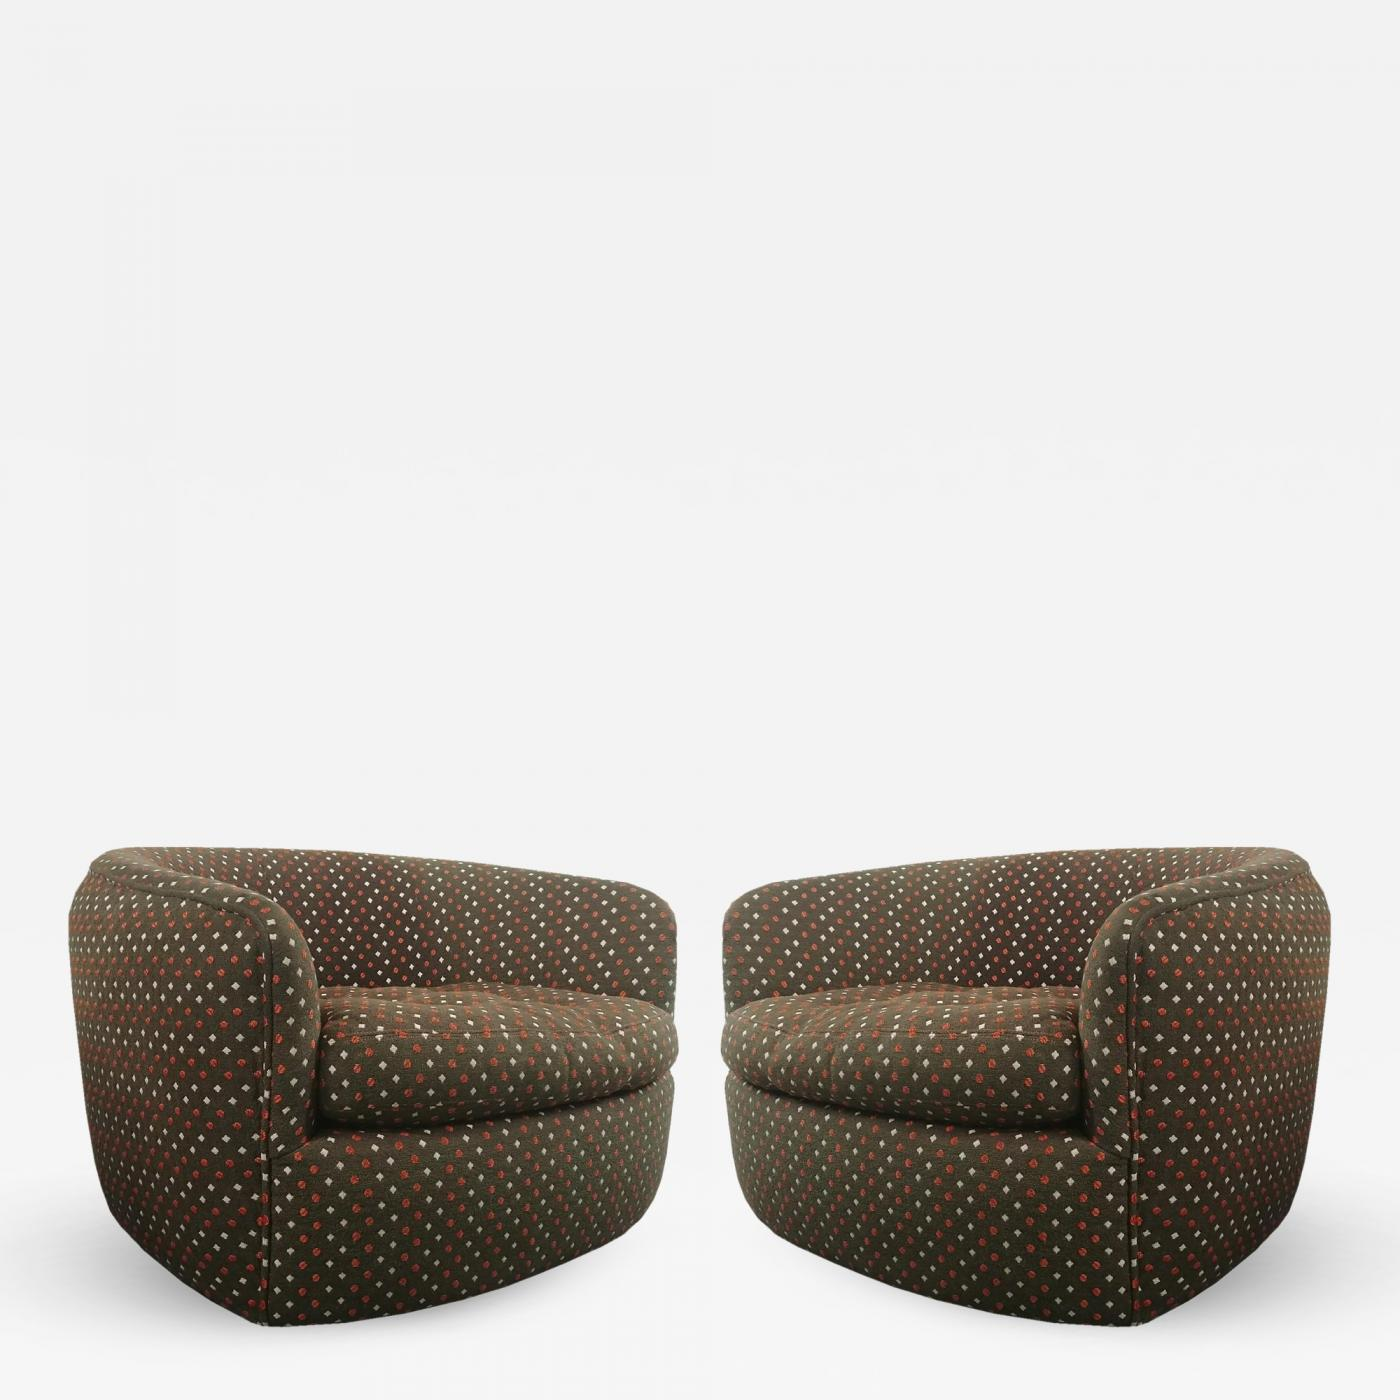 Outstanding Milo Baughman Swivel Tub Chairs Designed By Milo Baughman Camellatalisay Diy Chair Ideas Camellatalisaycom